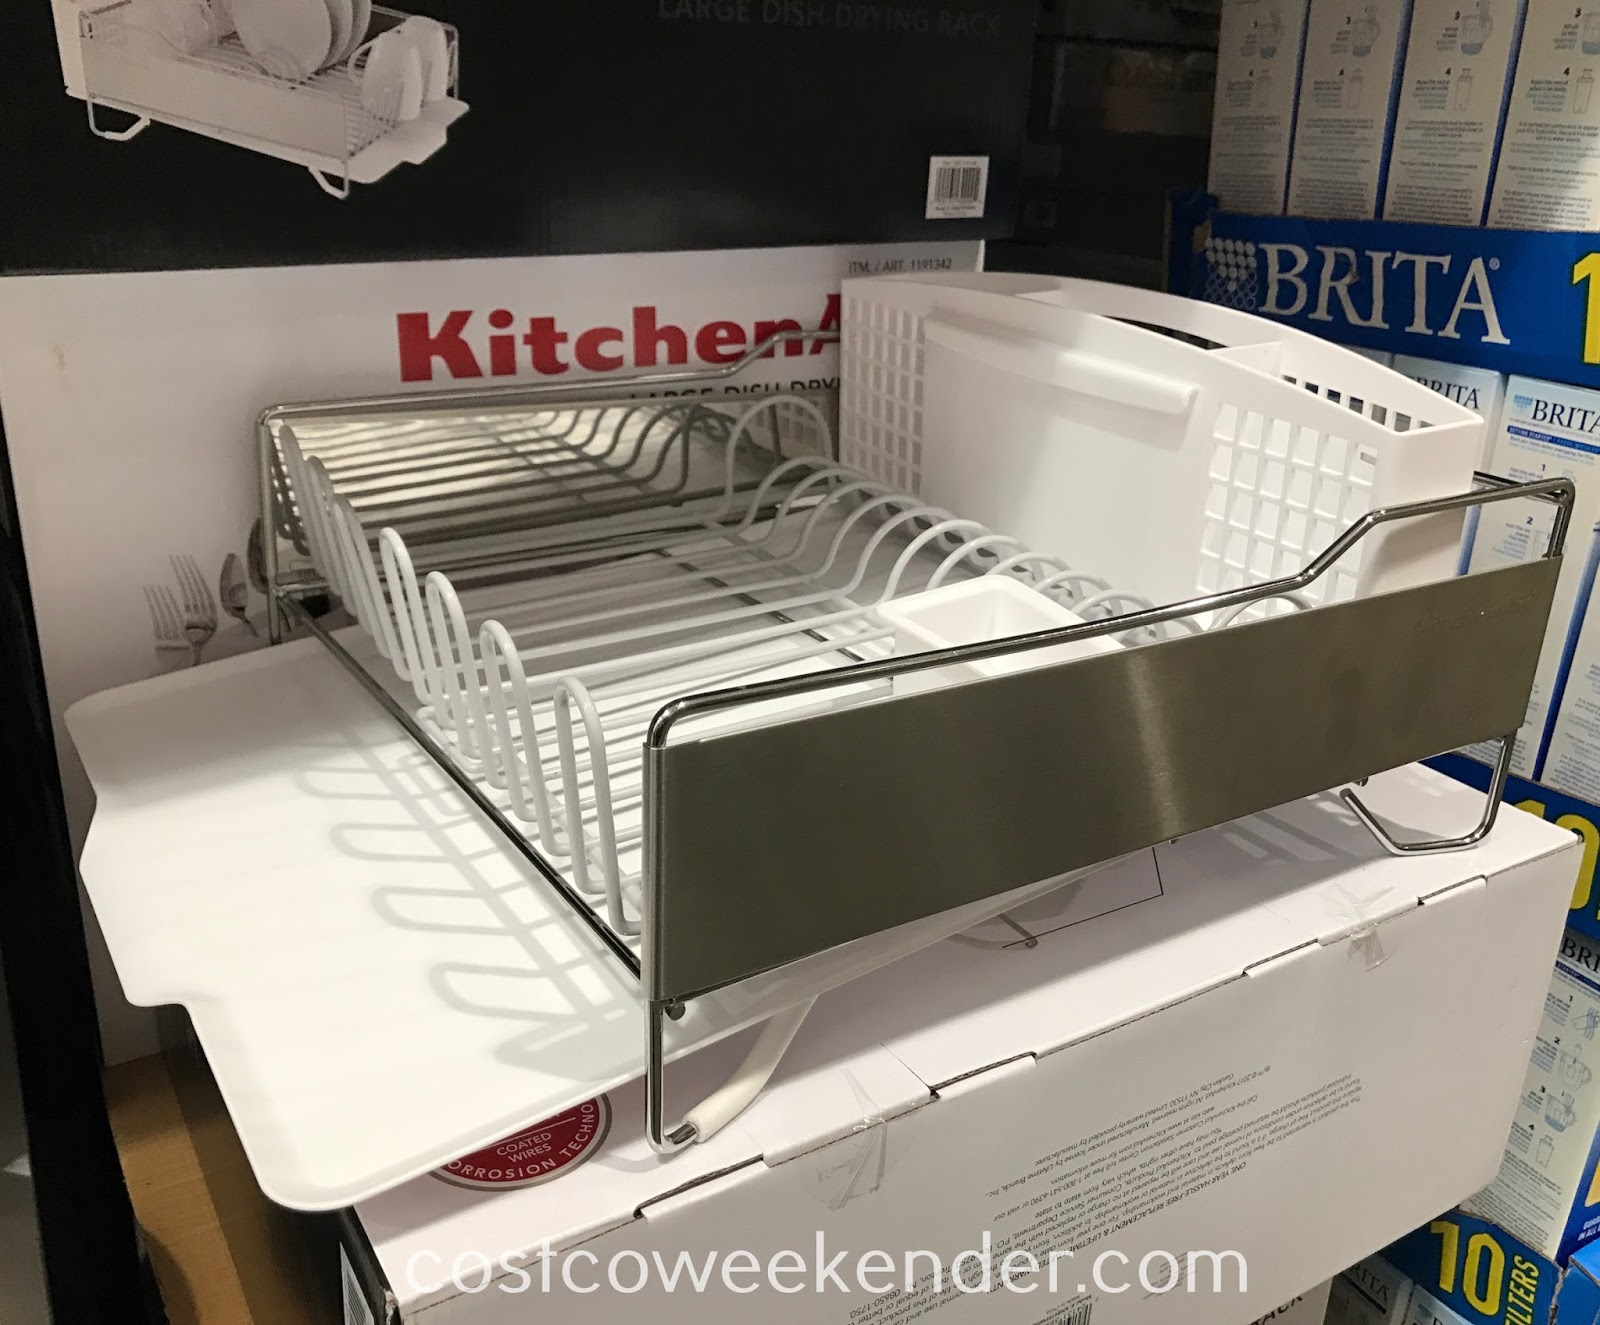 Costco 1191342 - KitchenAid Large Dish-Drying Rack holds a variety of cookware